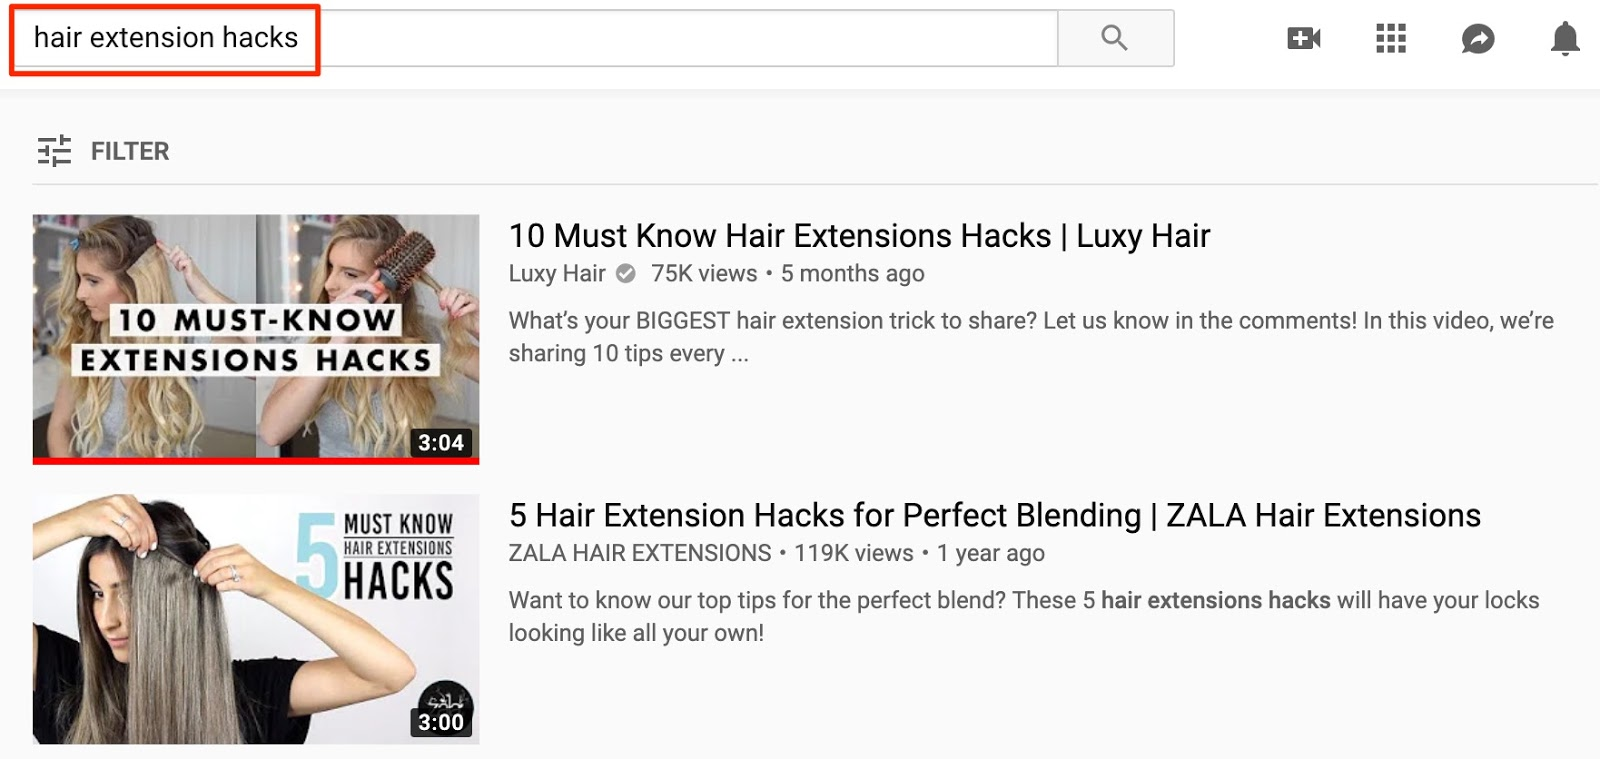 hair extension hacks YouTube